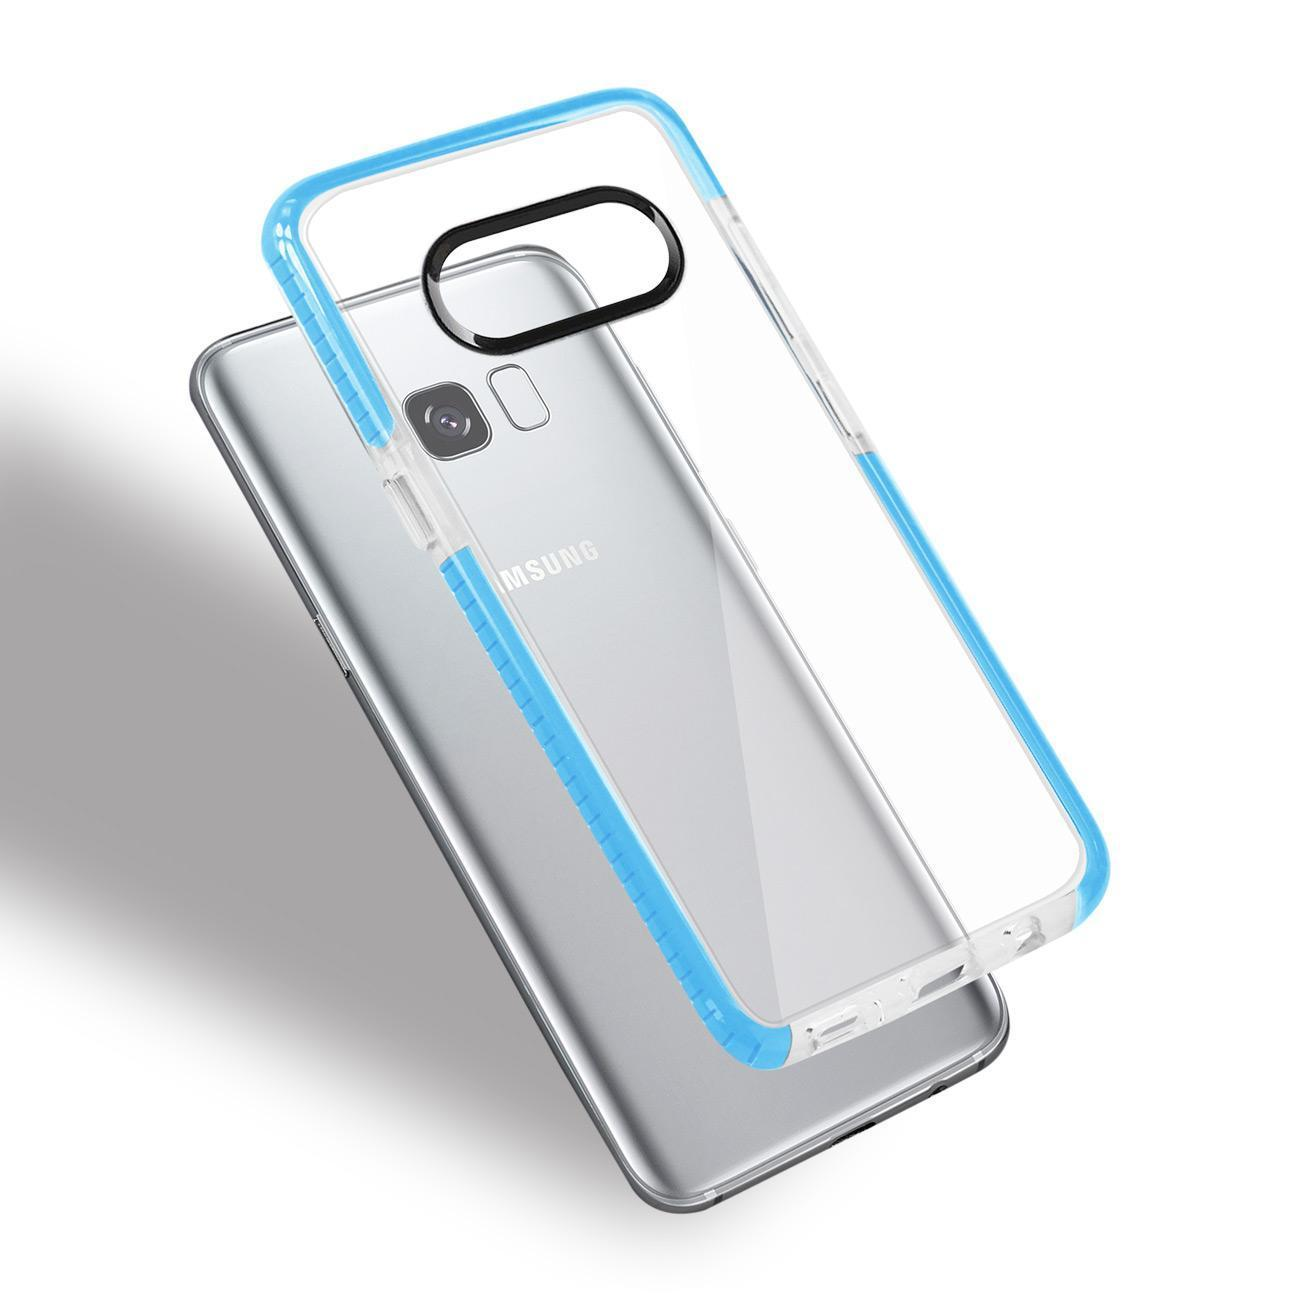 Reiko Samsung Galaxy S8- Sm Soft Transparent Tpu Case In Clear Blue